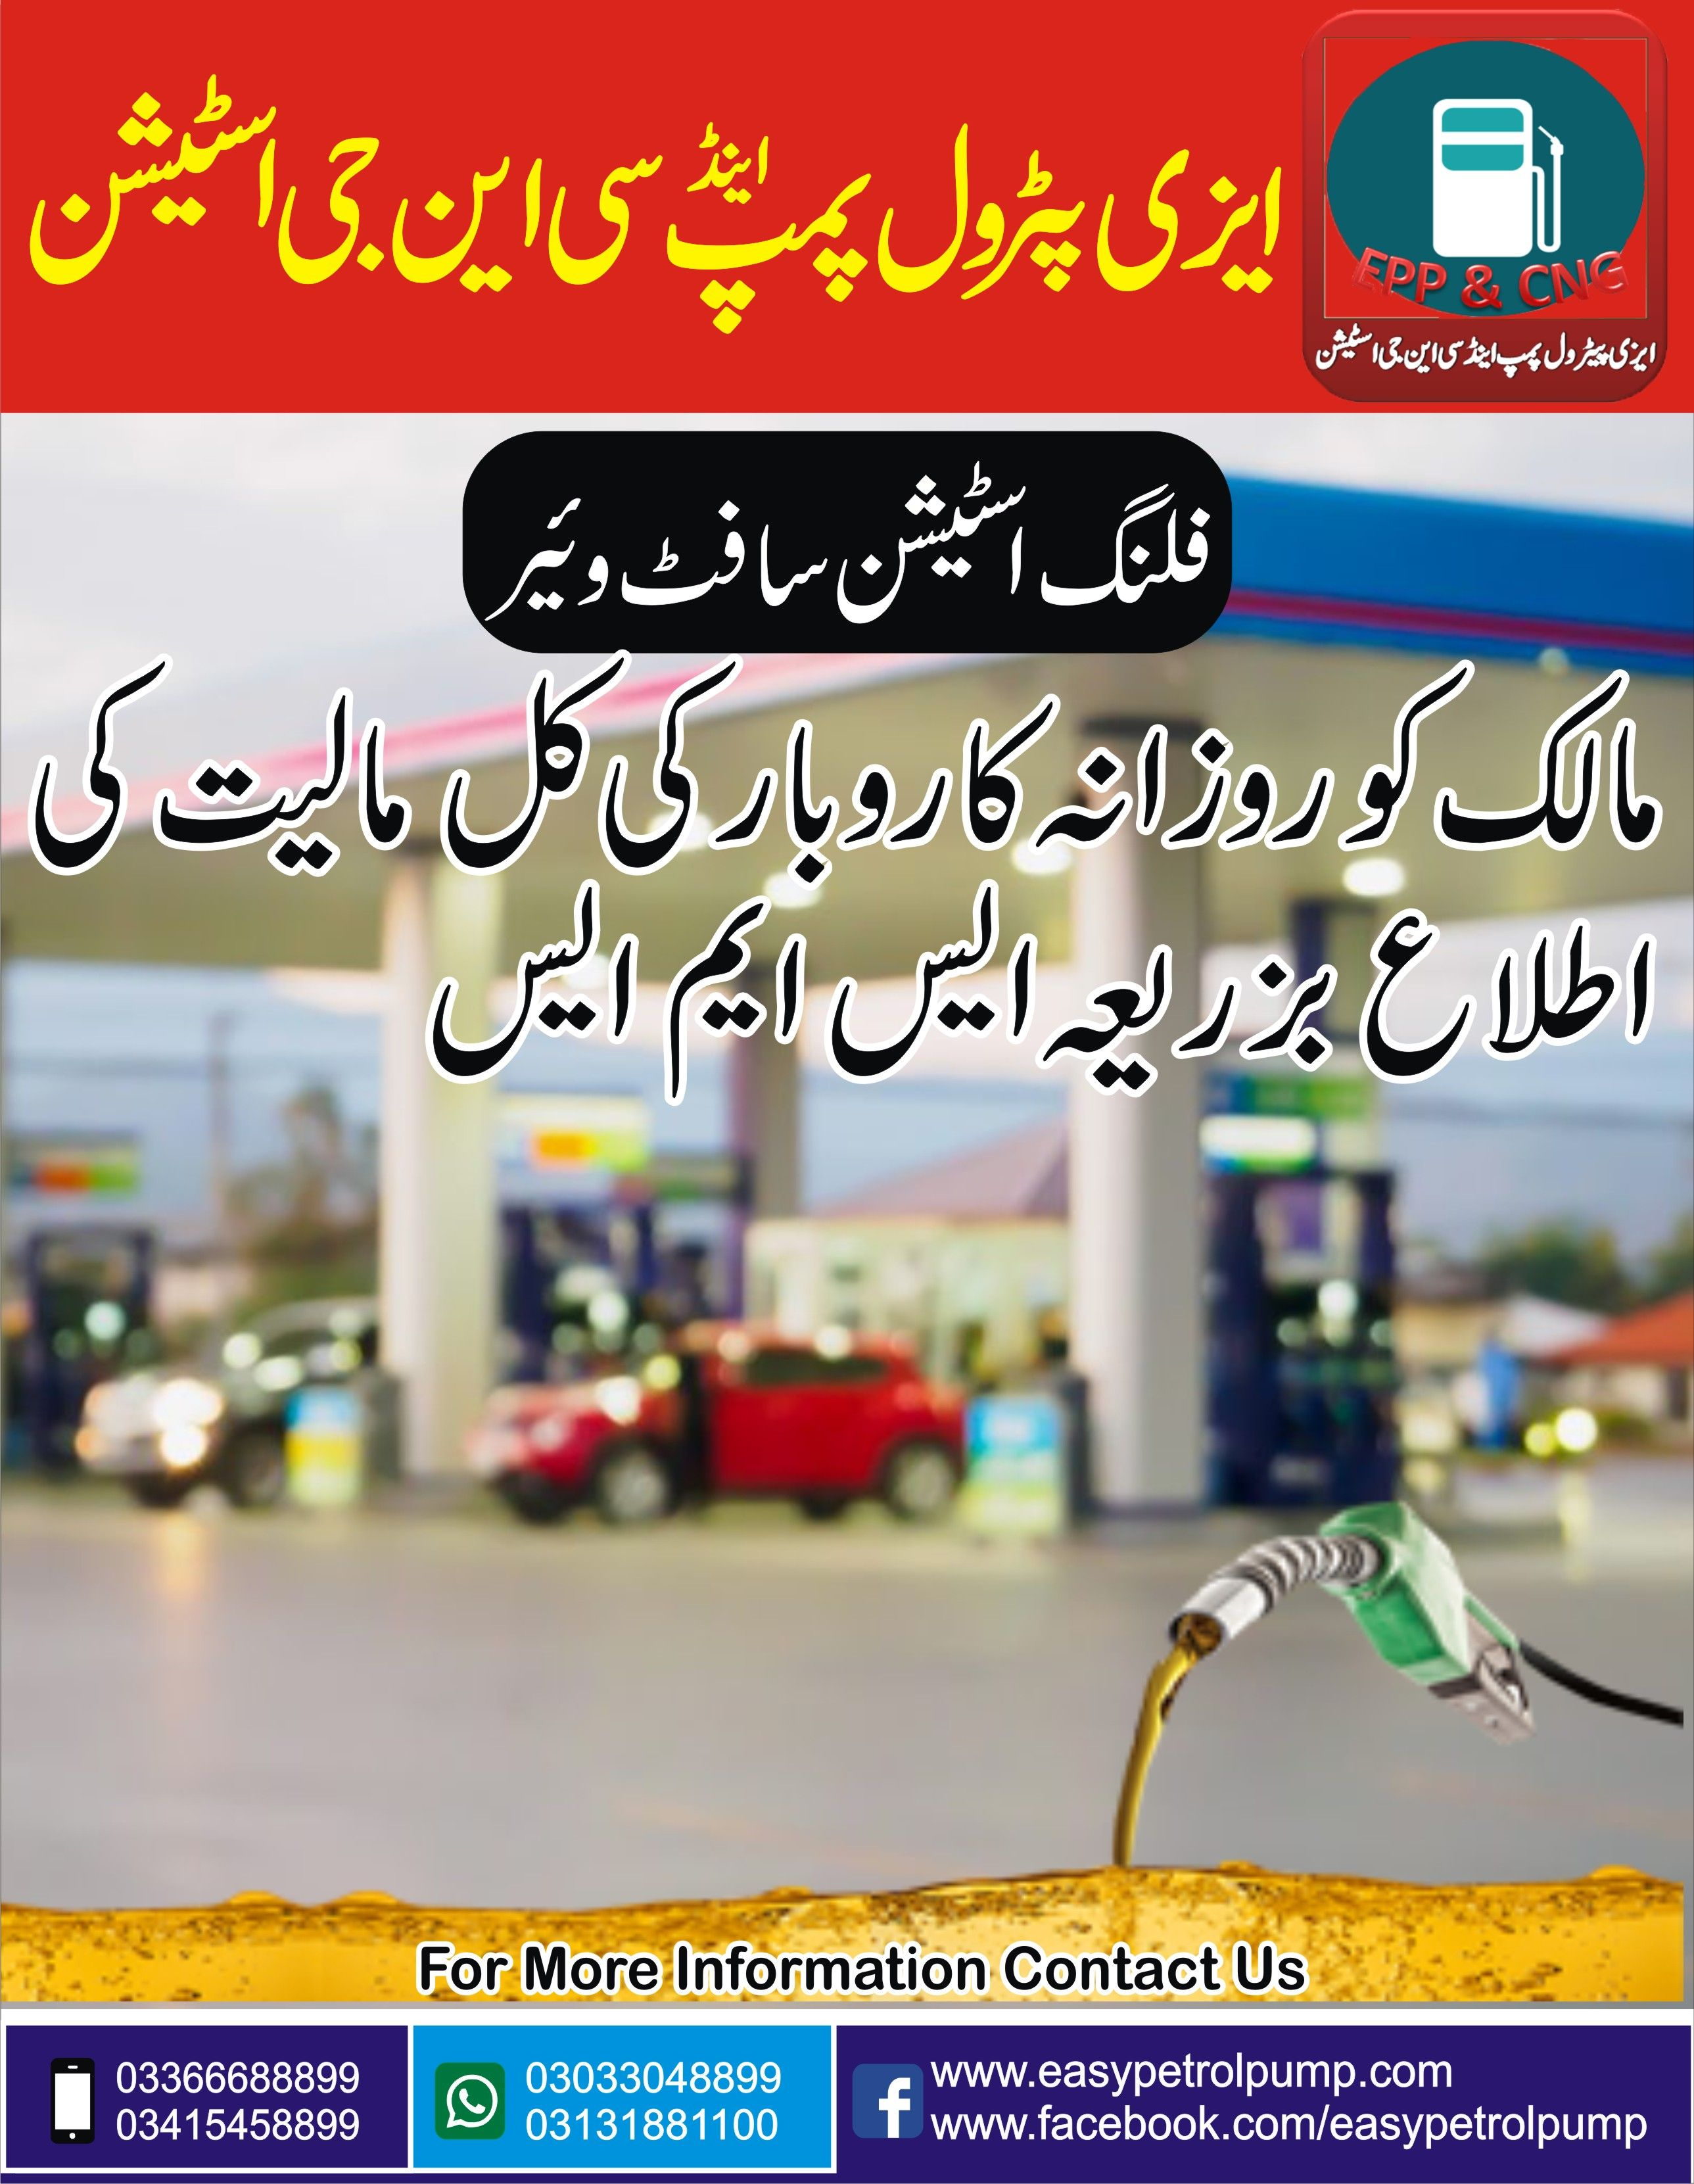 Easy Petrol Pump Amp Cng Station Software In Pakistan With